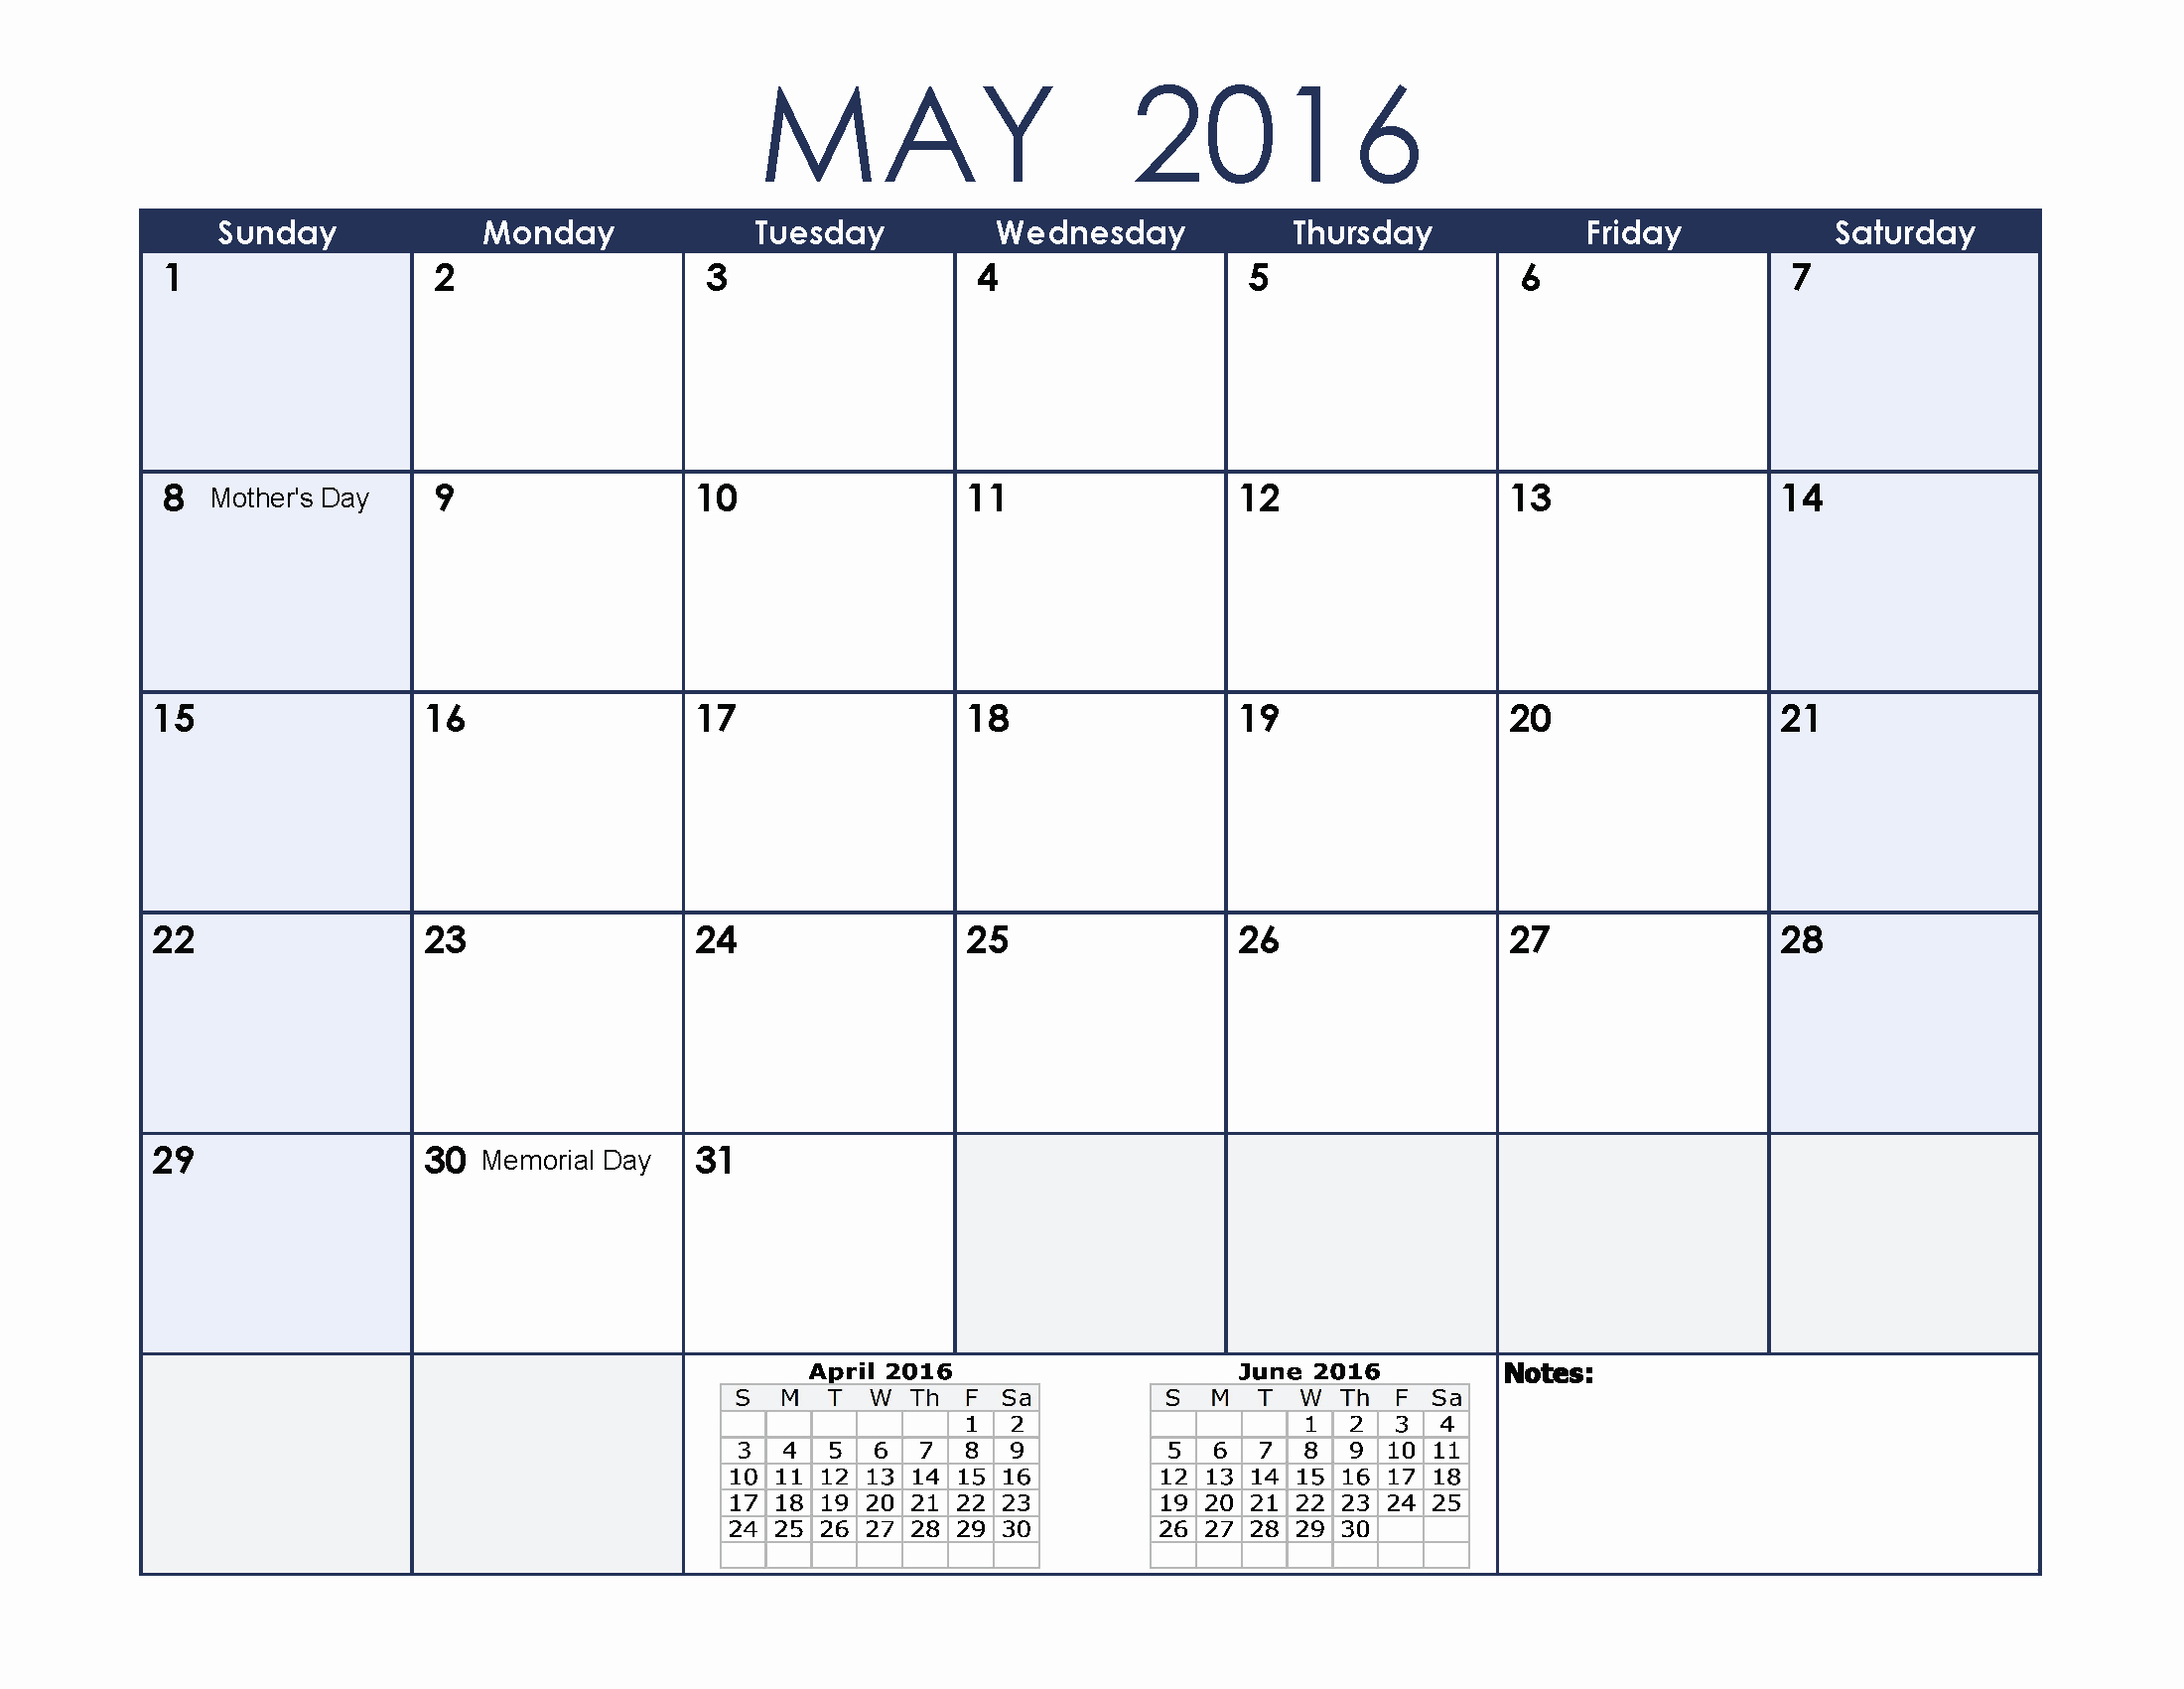 Calendar 2016 Printable with Holidays Best Of May 2016 Calendar with Holidays[usa Uk Canada